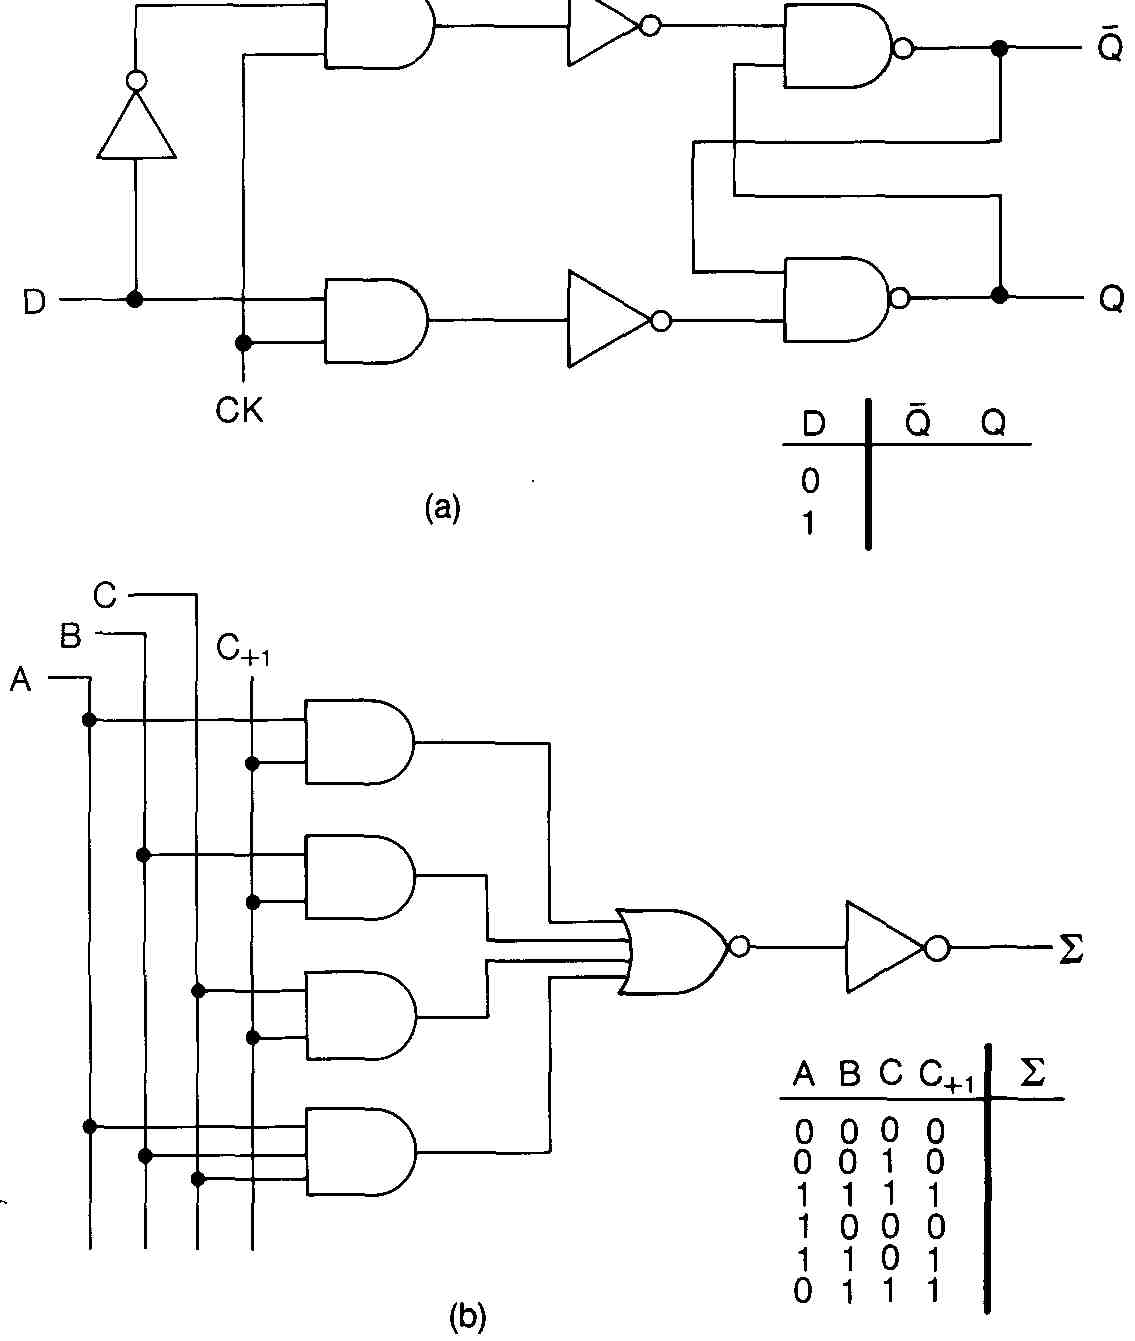 Flow And Logic Diagrams Diagram For T Flip Flop A B An Adder Circuit